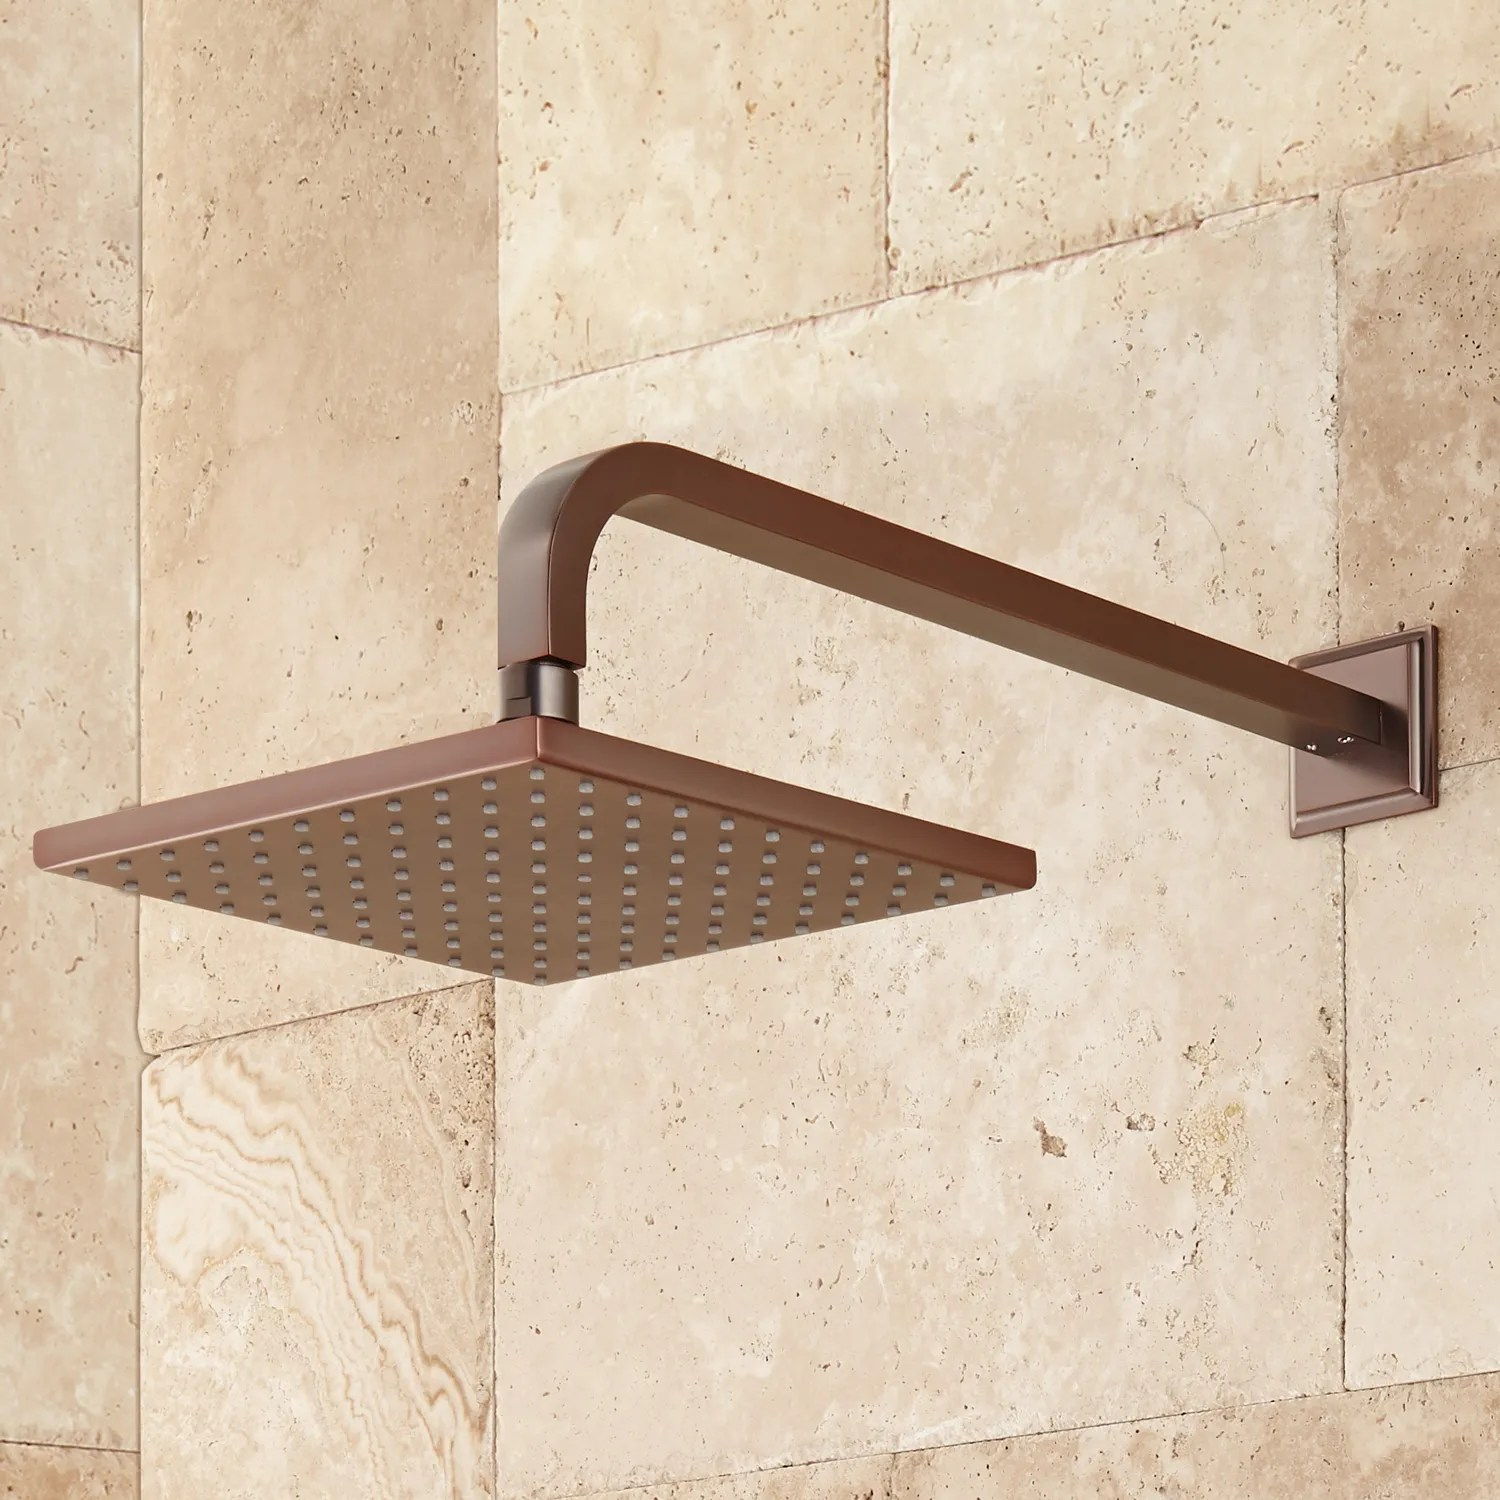 Details About Signature Hardware Ryle Dual Wall Mount Rainfall Shower System With Hand Shower